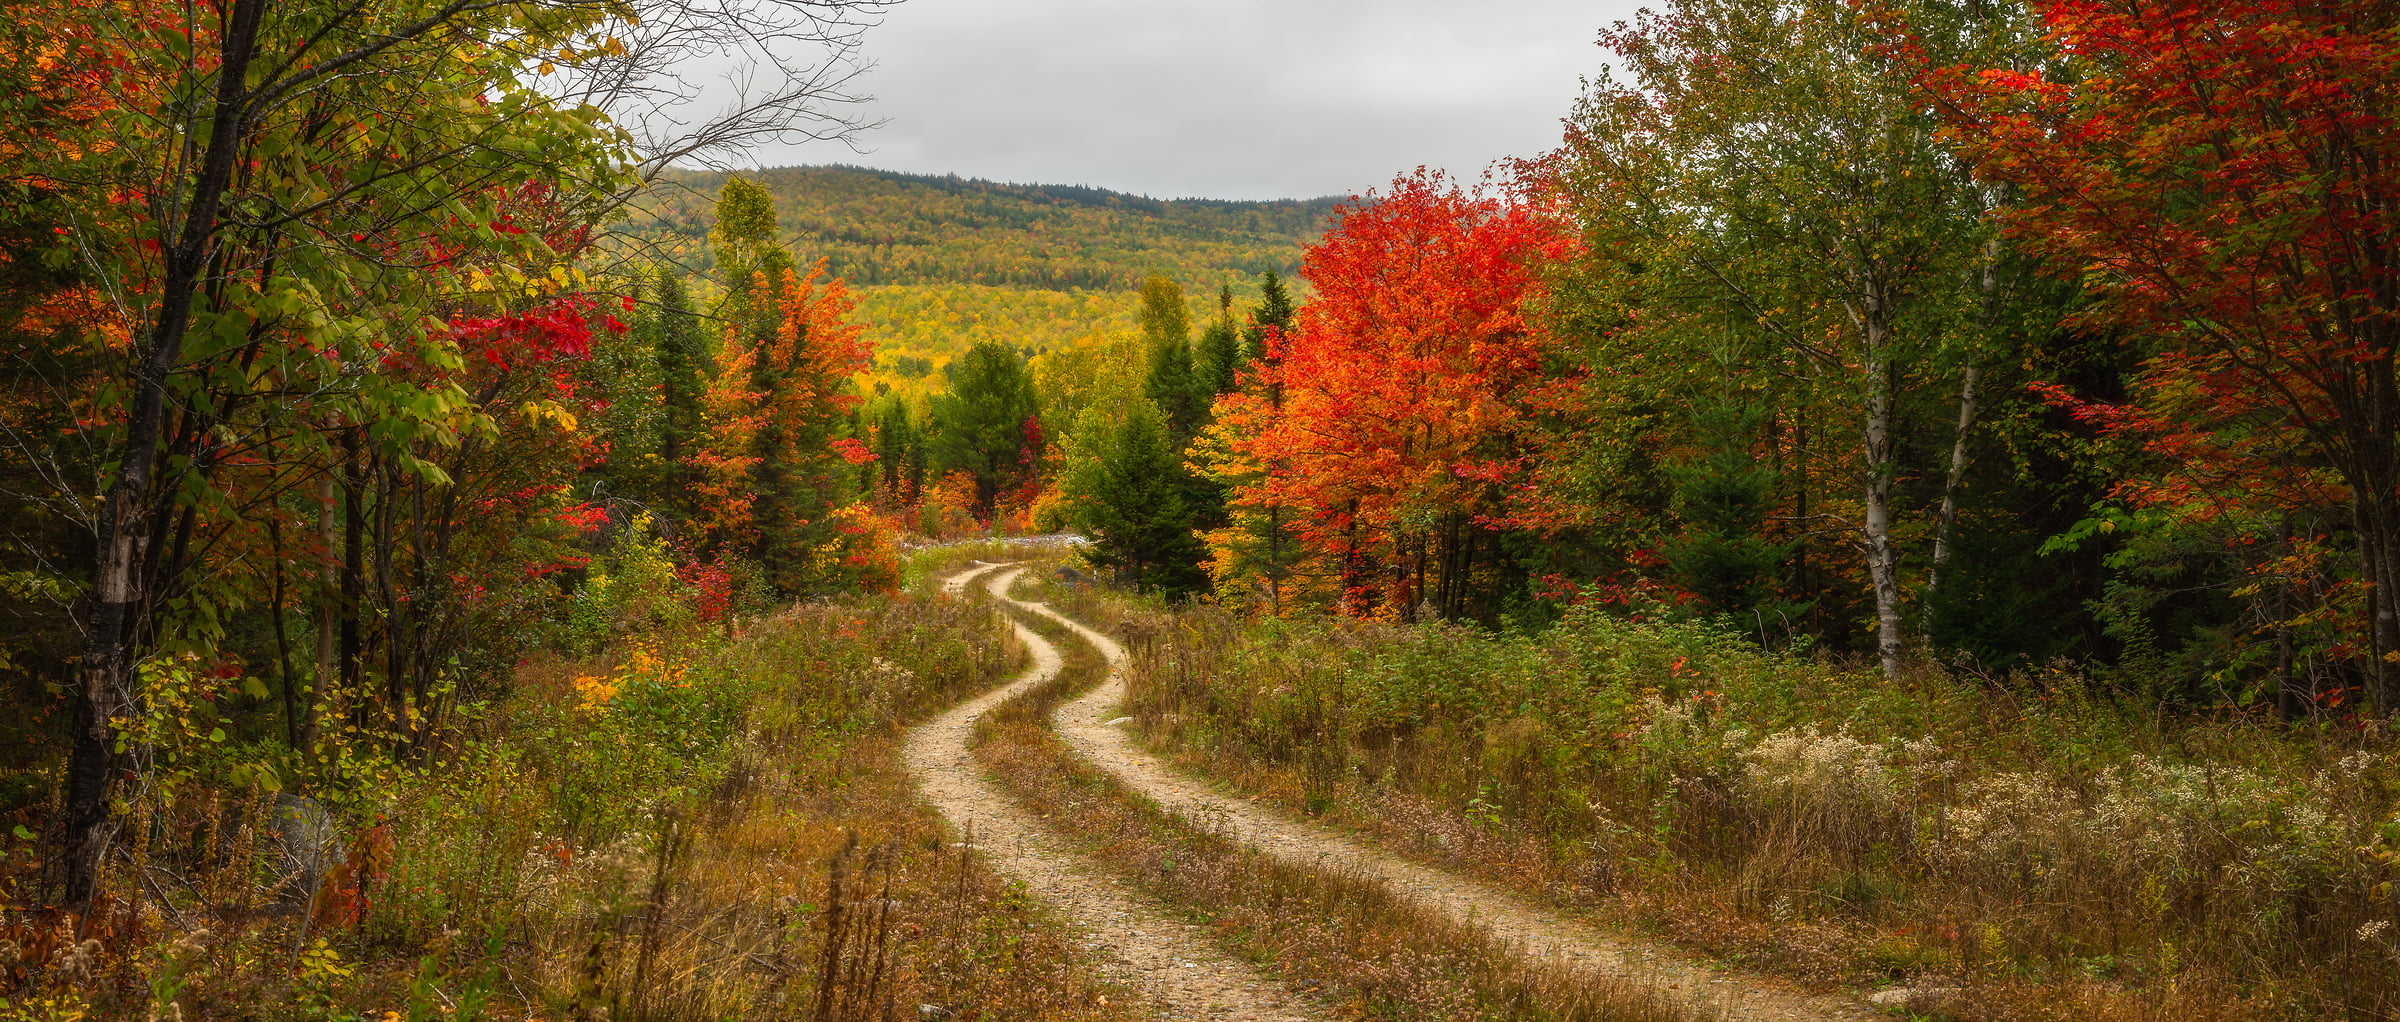 119 megapixels! A very high resolution, large-format photo of colorful fall foliage, leaves, and a winding dirt road; fine art photograph created by Aaron Priest in Northeast Piscataquis, Maine